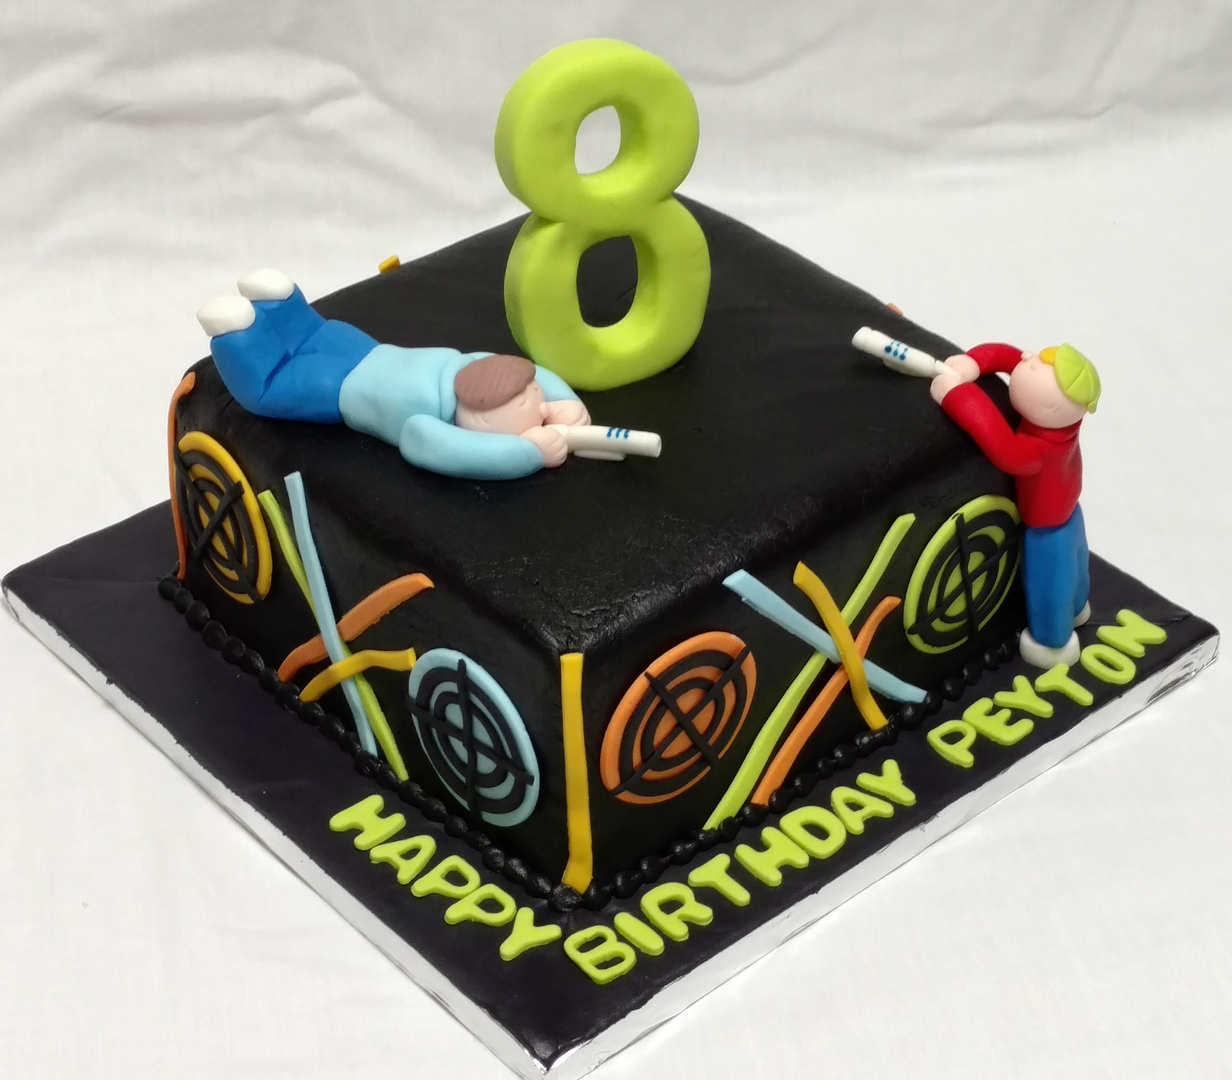 Astounding Custom Made Cakes And Cookies In West Sports Cakes 4 Archery Birthday Cards Printable Riciscafe Filternl